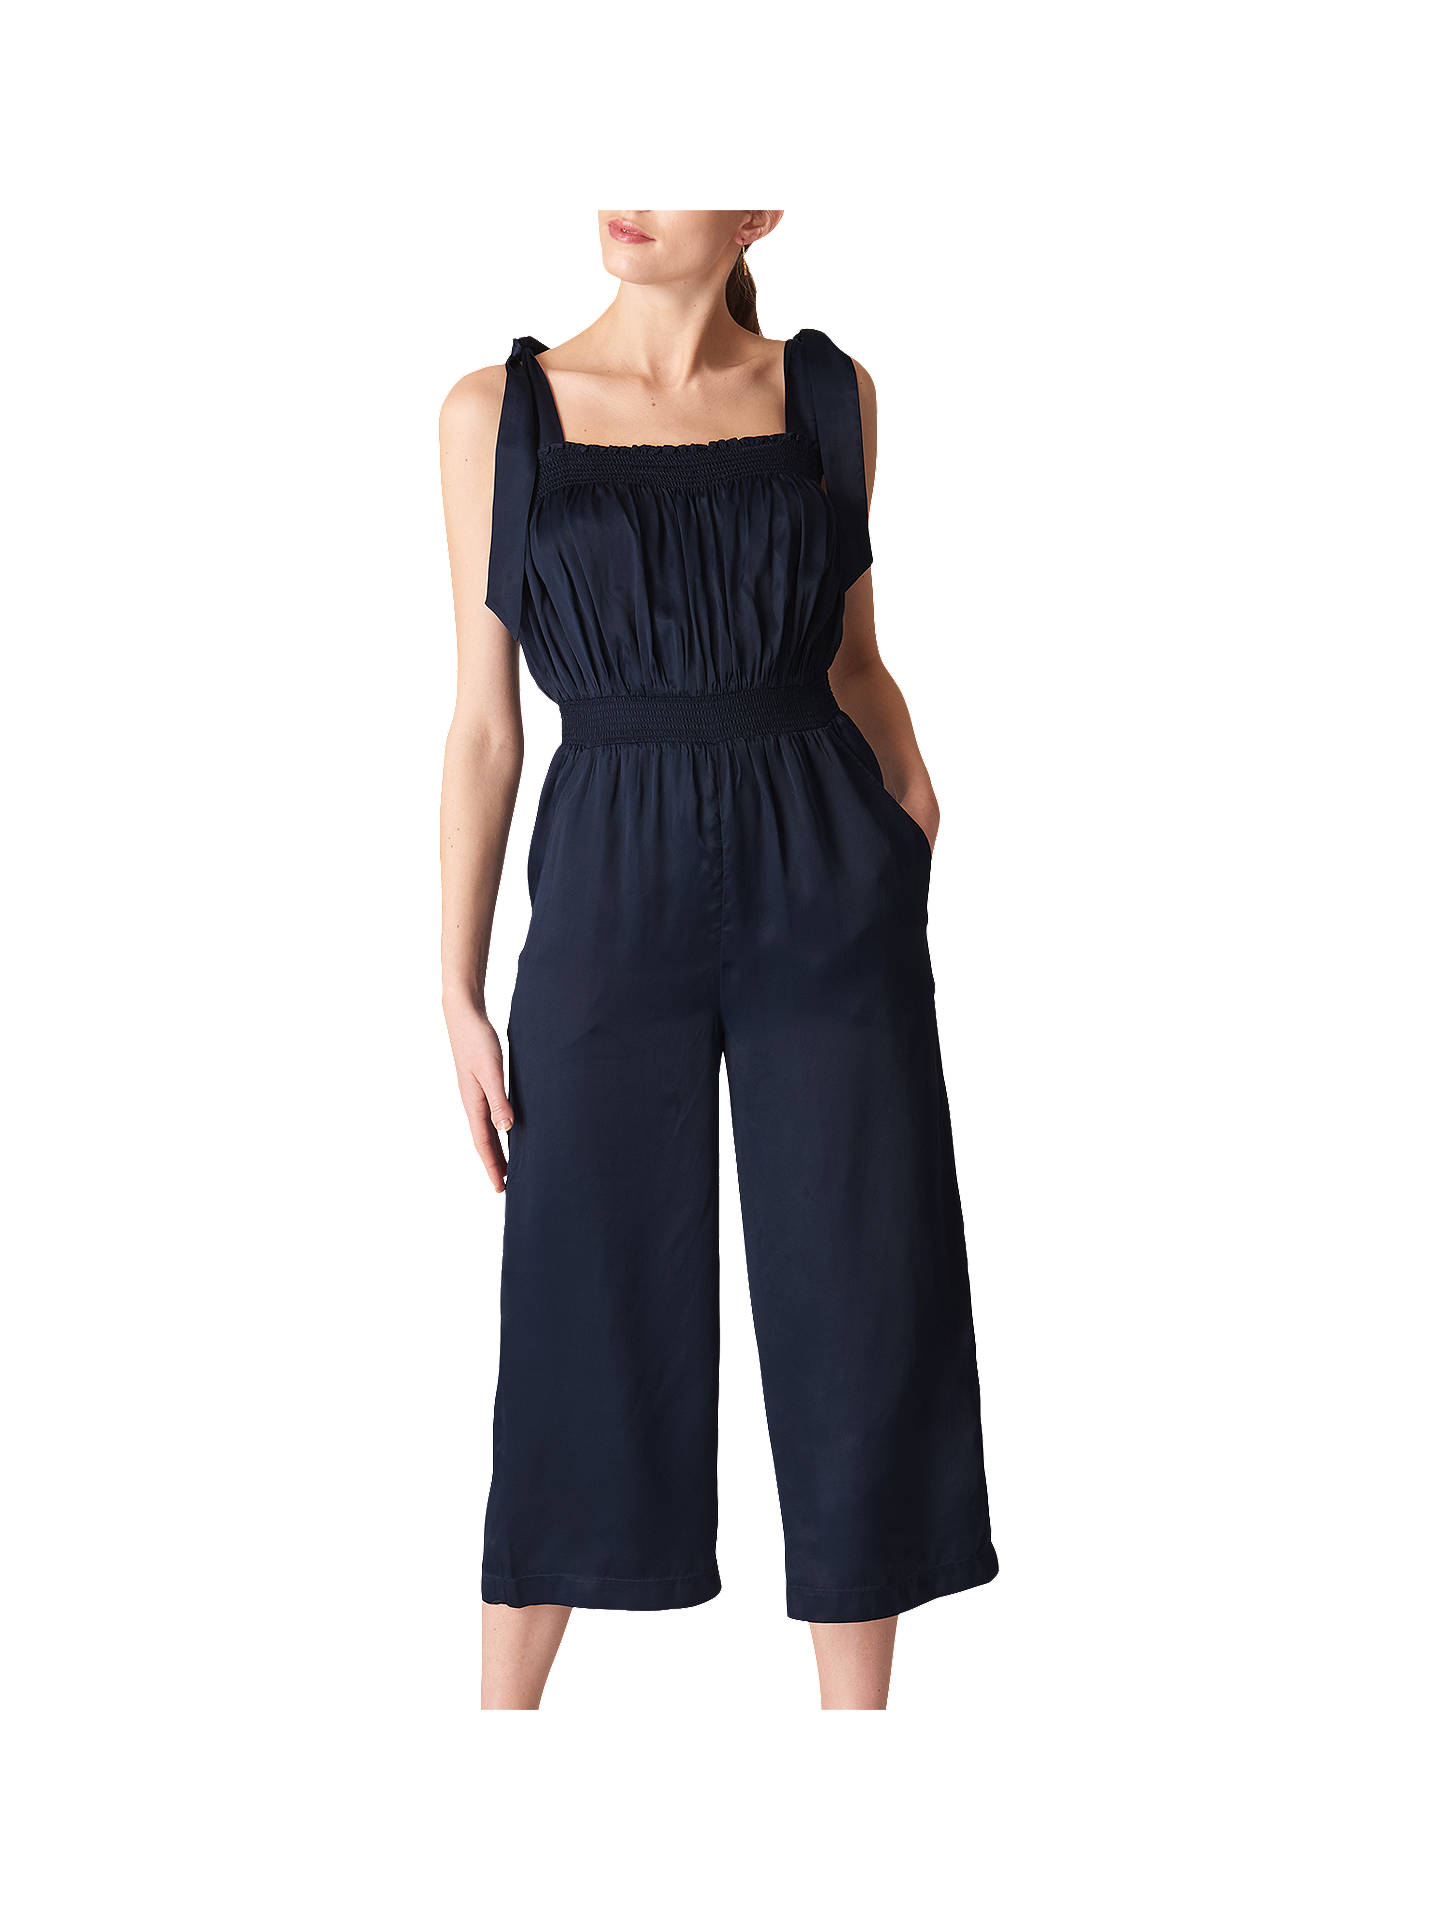 22bb3e6db8e Whistles Ally Tie Shoulder Jumpsuit at John Lewis   Partners